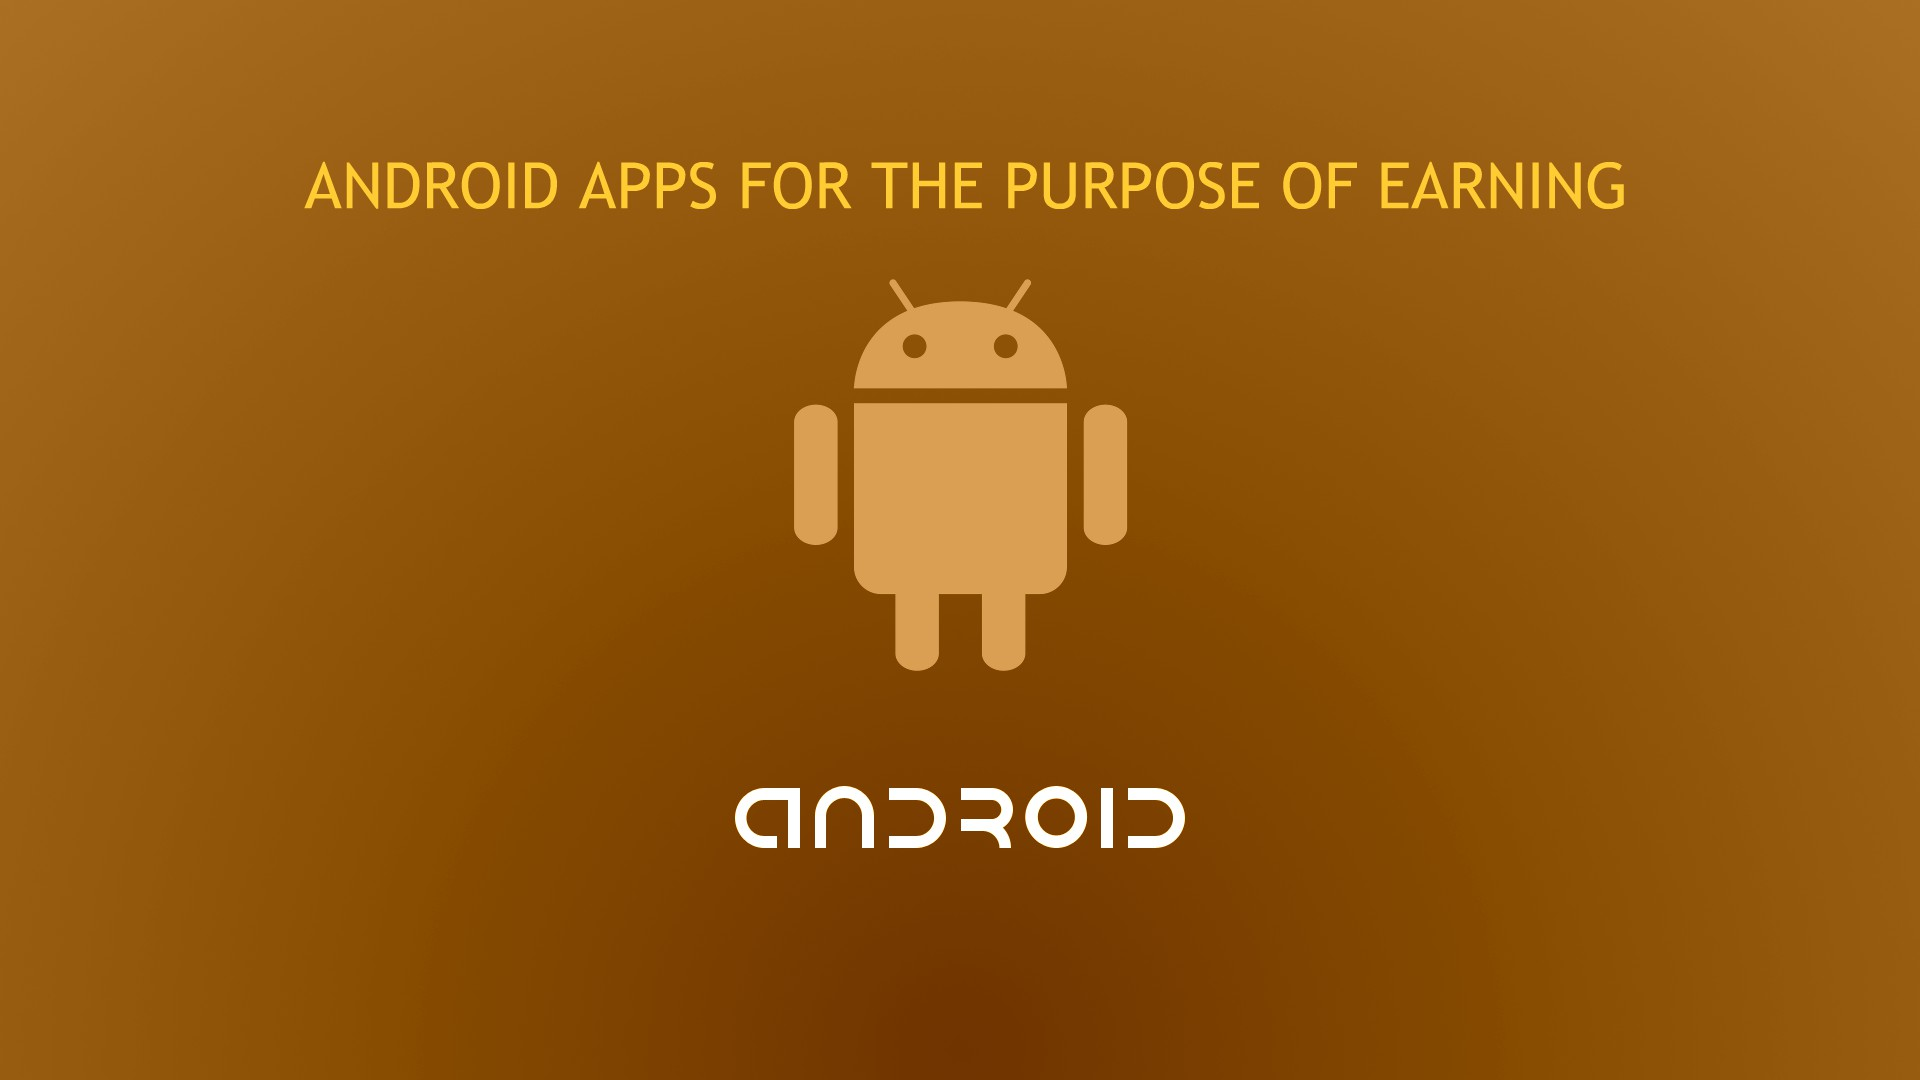 ANDROID APPS FOR THE PURPOSE OF EARNING